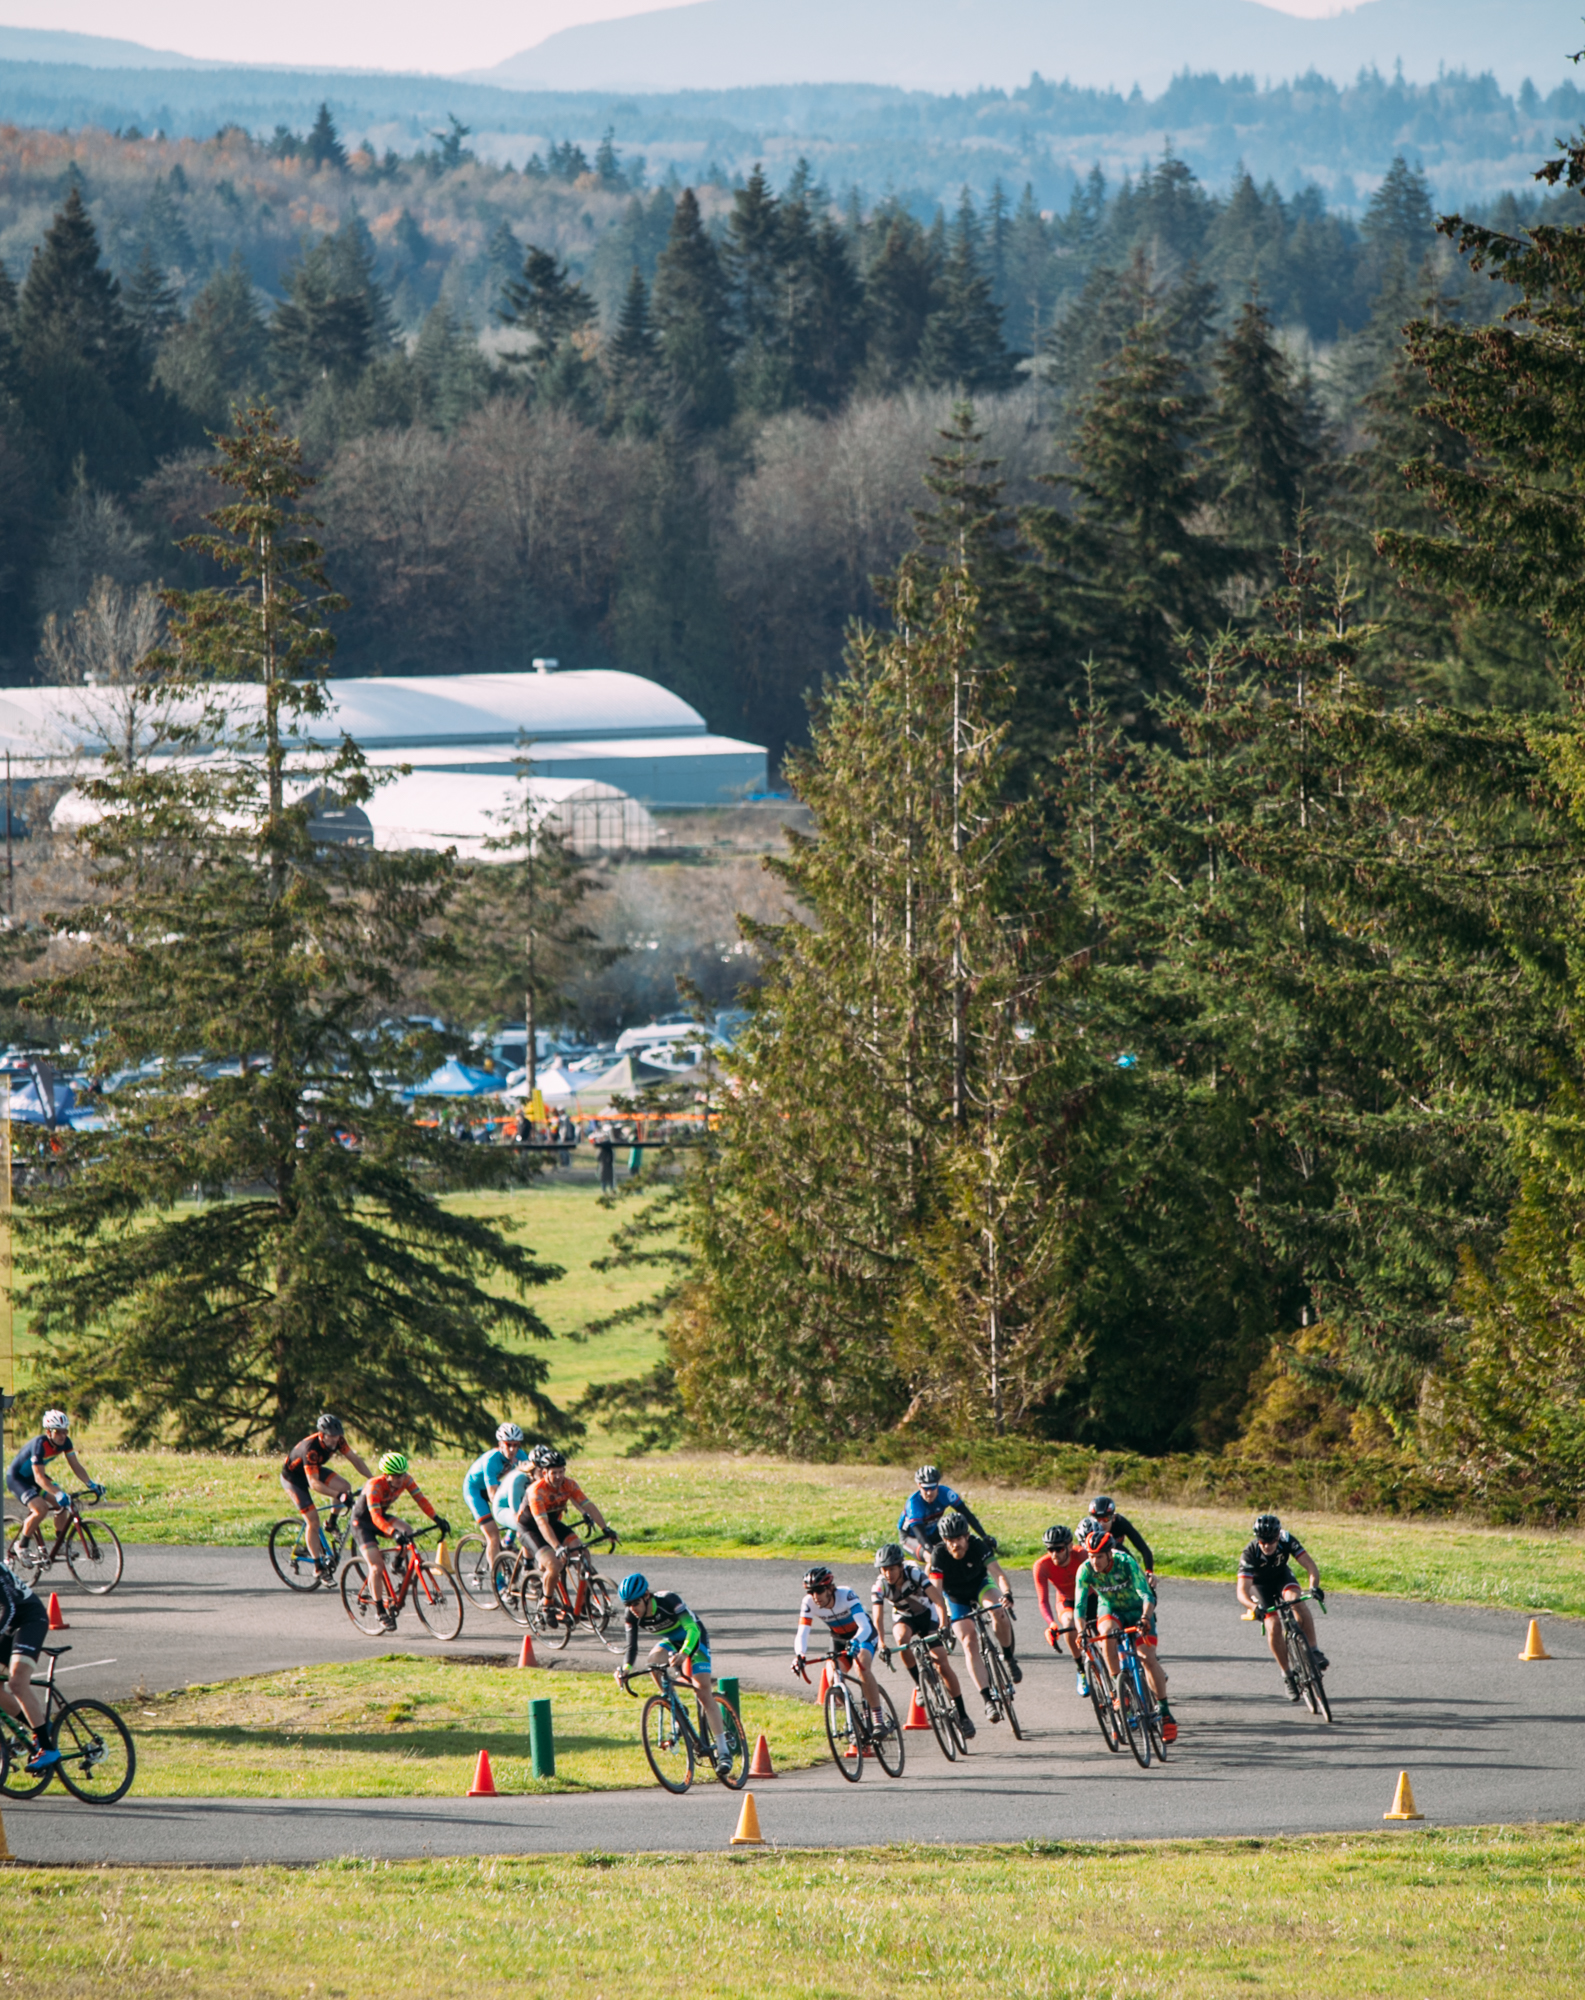 Cyclocross18_CCCX_RainierHS-19-mettlecycling.jpg